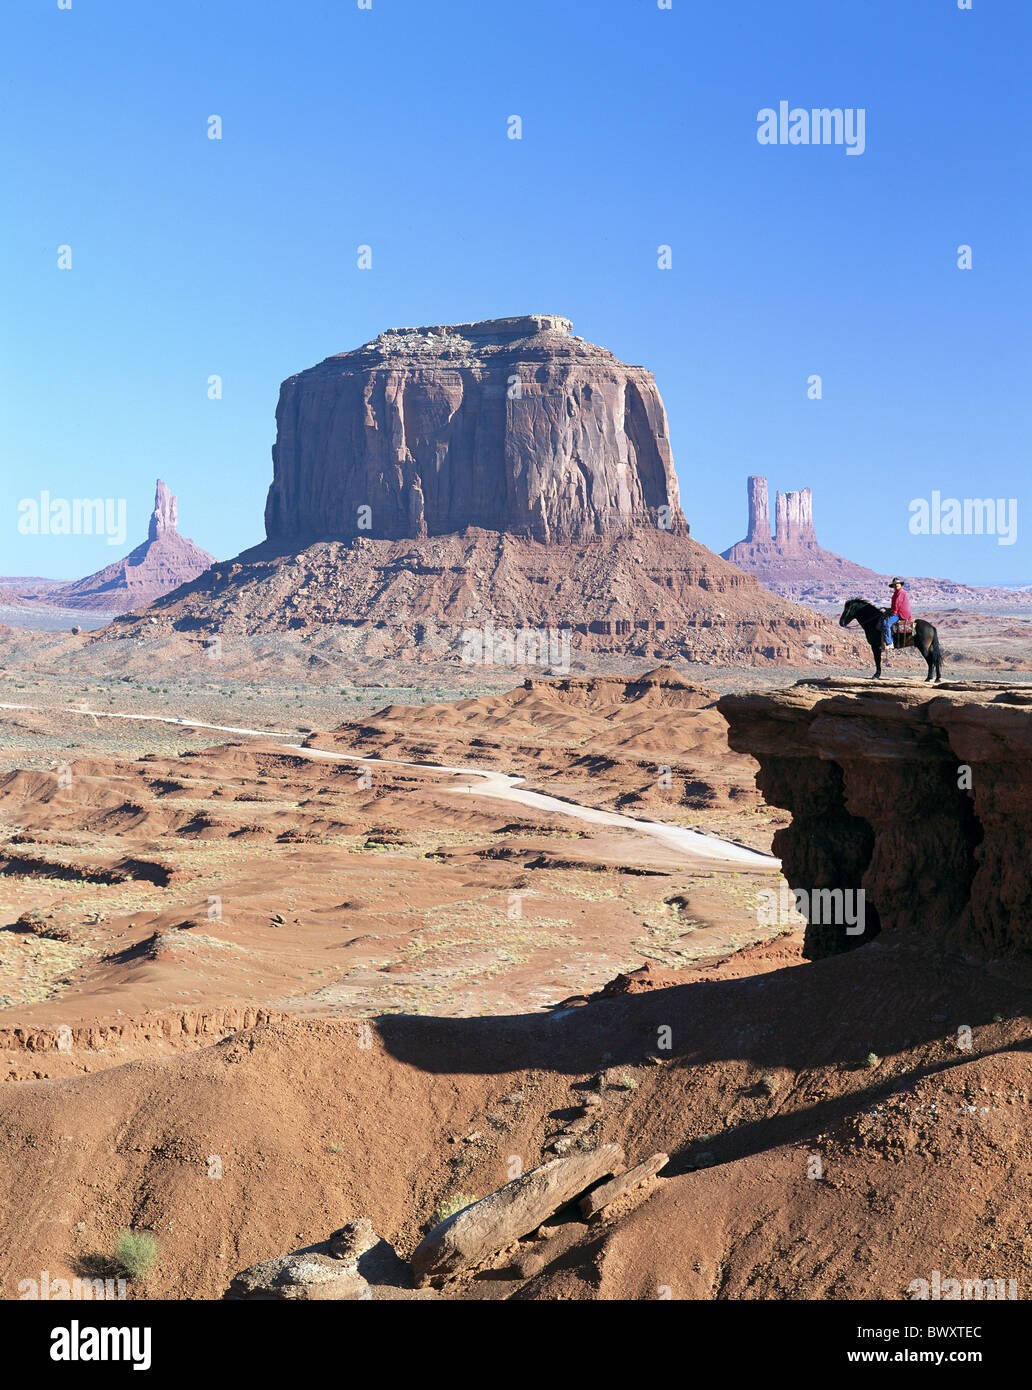 Nord Arizona cowboy falaise rocheuse scenery Monument Valley horse stand USA Amérique du Nord Photo Stock